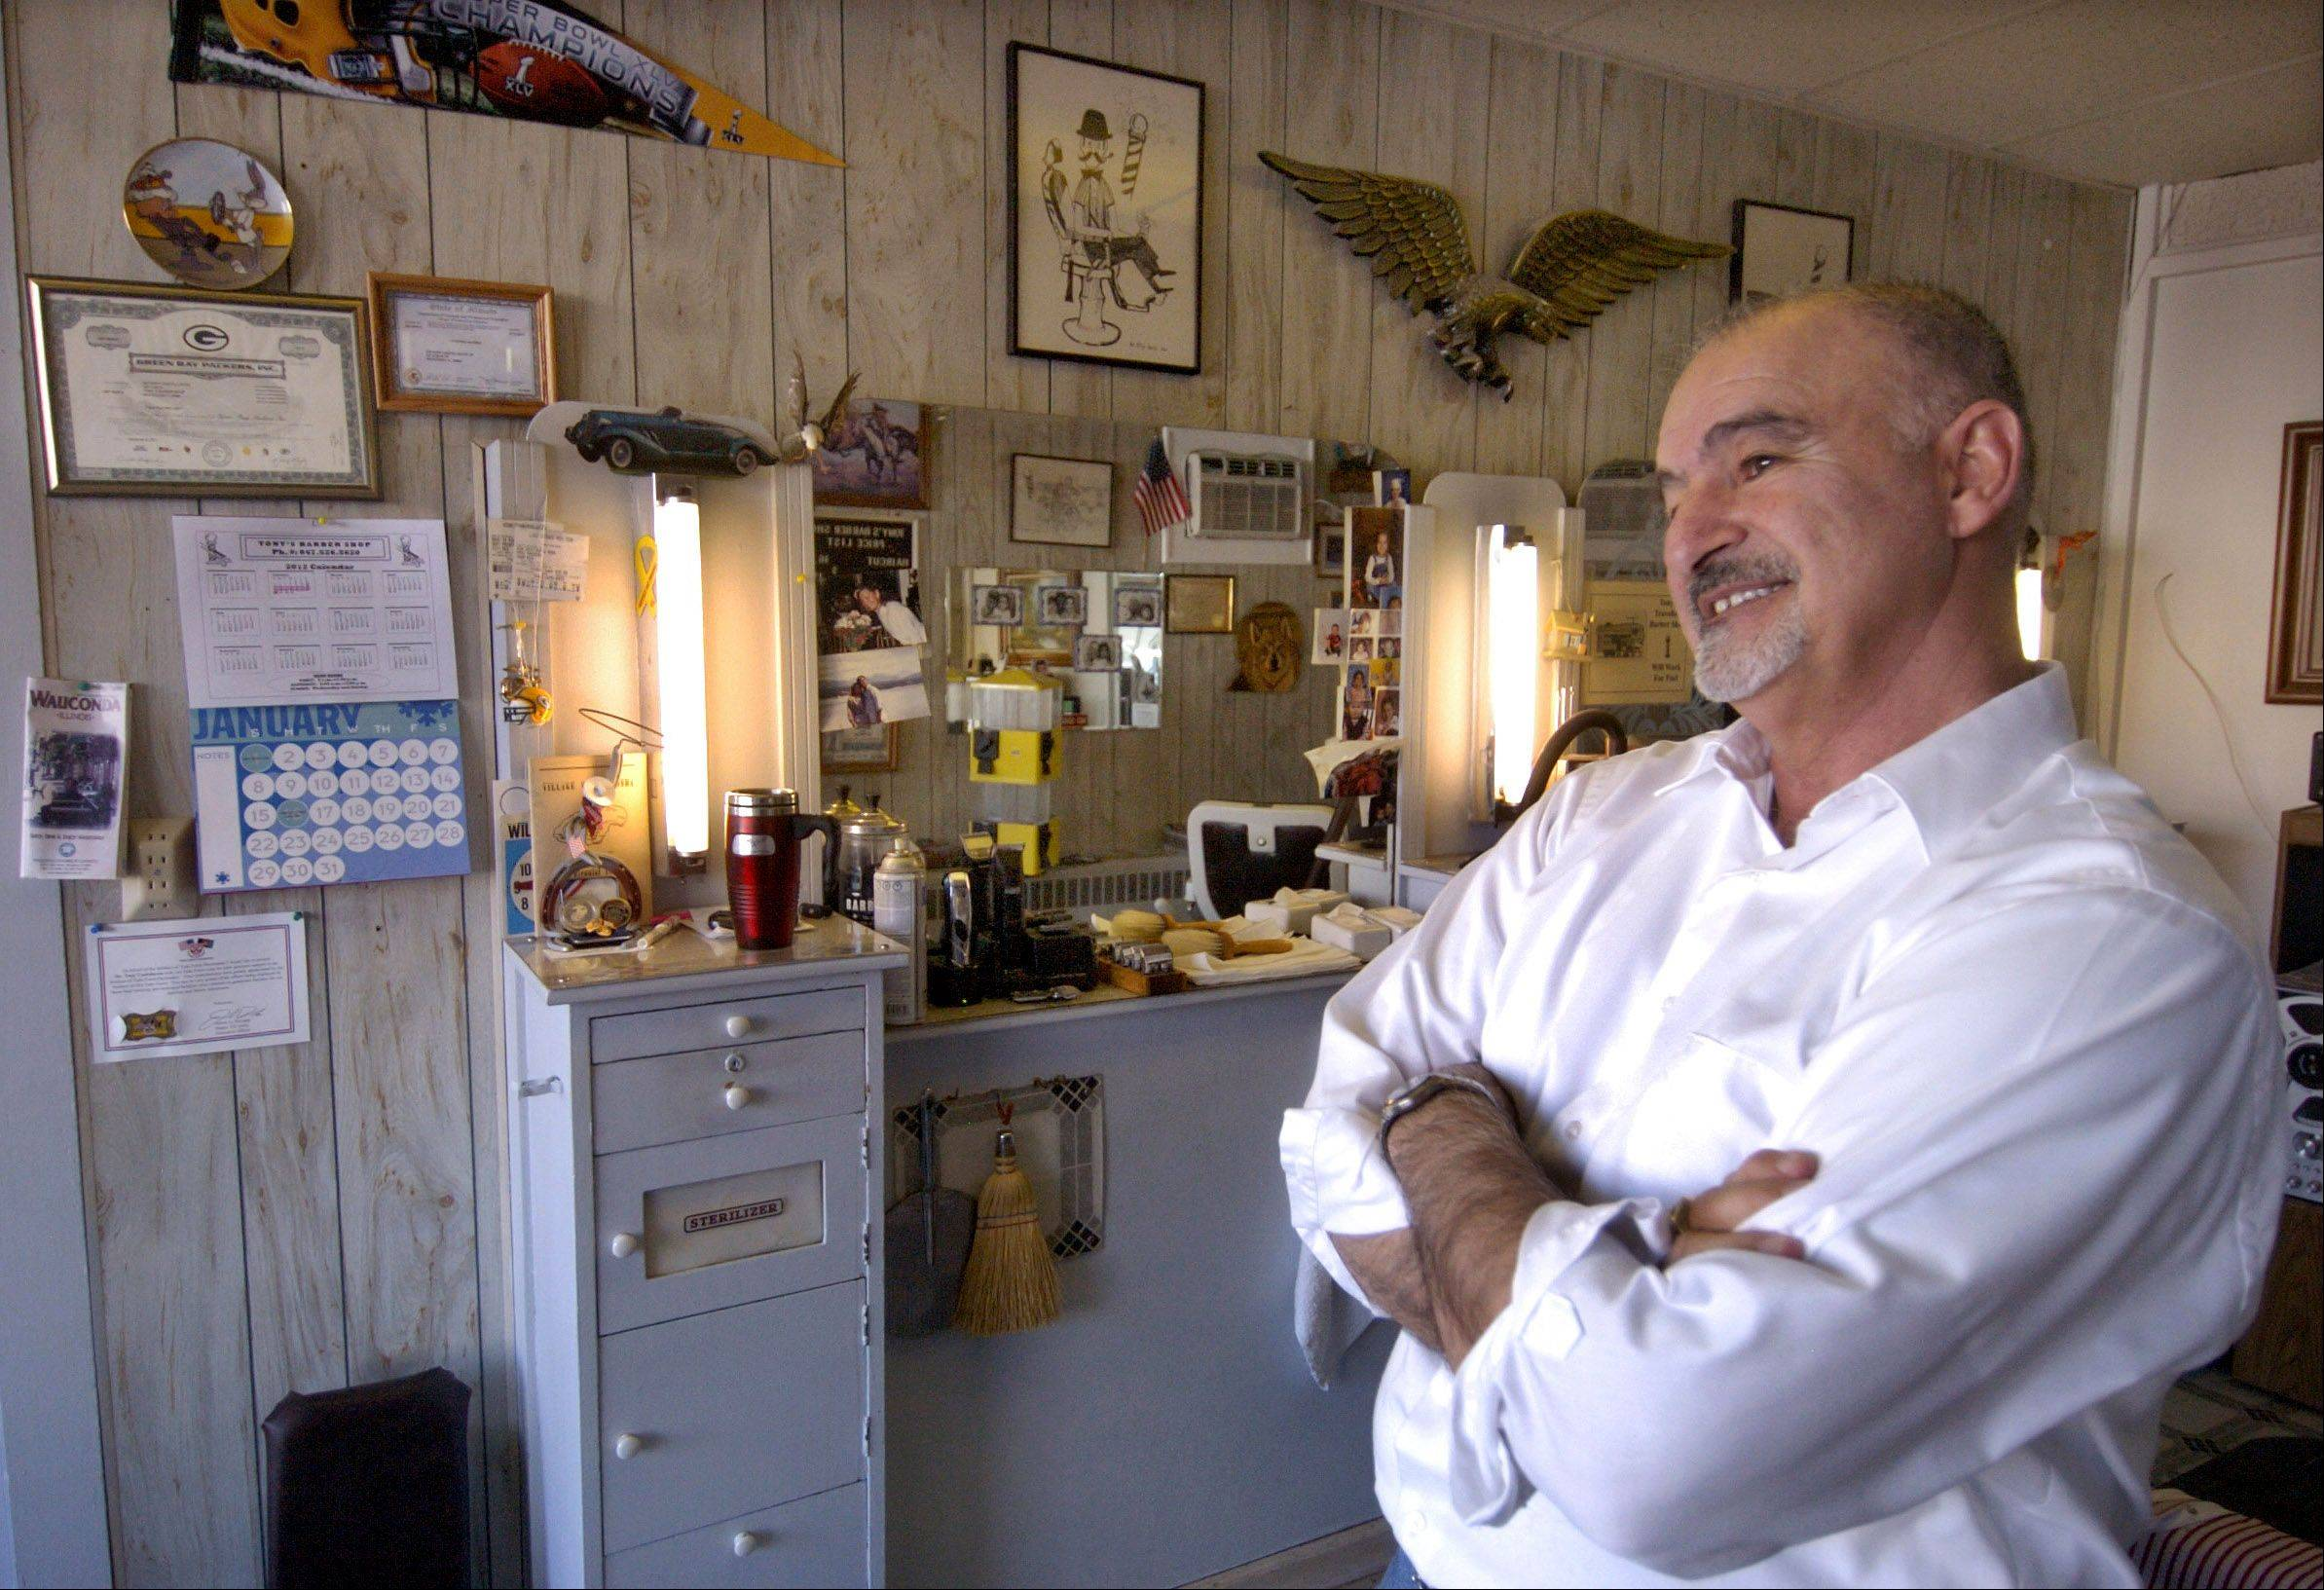 Tony Castelluccio ponders retirement inside his Wauconda barber shop.